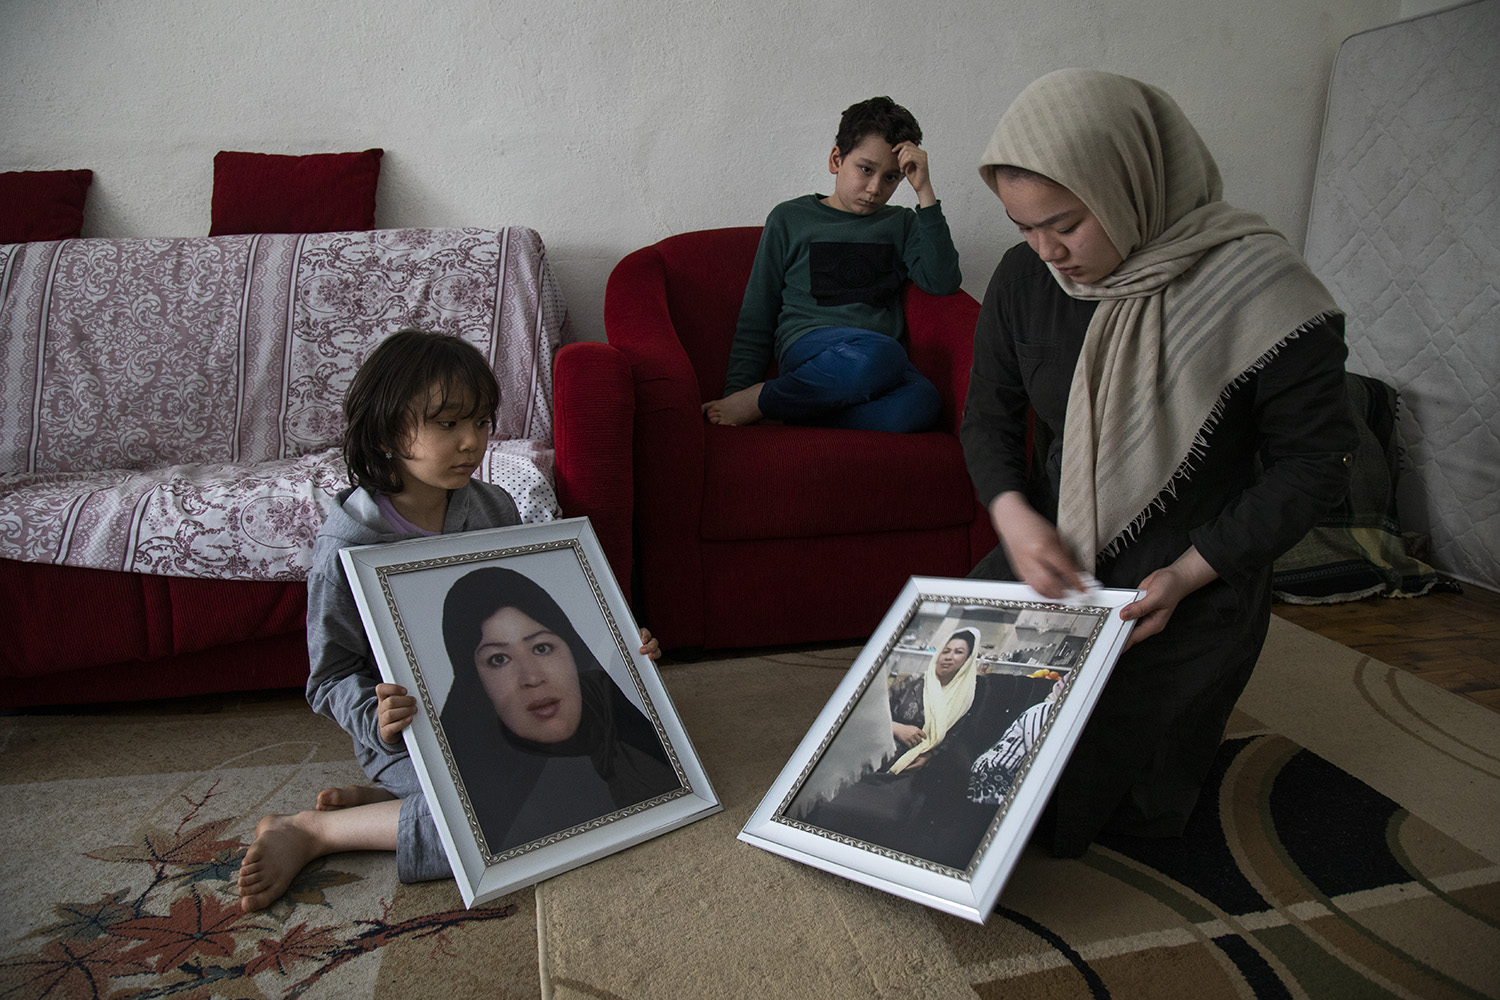 From left, members of the Ahmedzada family, 7-year-old Taiba, 11-year-old Abdolhassan, and 14-year-old Bahara, clean photographs of their mother, Roya, at their home in Turkey on April 20, 2019. The family, originally from Ghazni, Afghanistan, was crossing the Iran-Turkey border when they became separated. Roya handed the two younger children to their father to carry them across a mountain stream before she was swept away. Weeks later, her body was found by Iranian border guards. Authorities said she had been shot and killed.